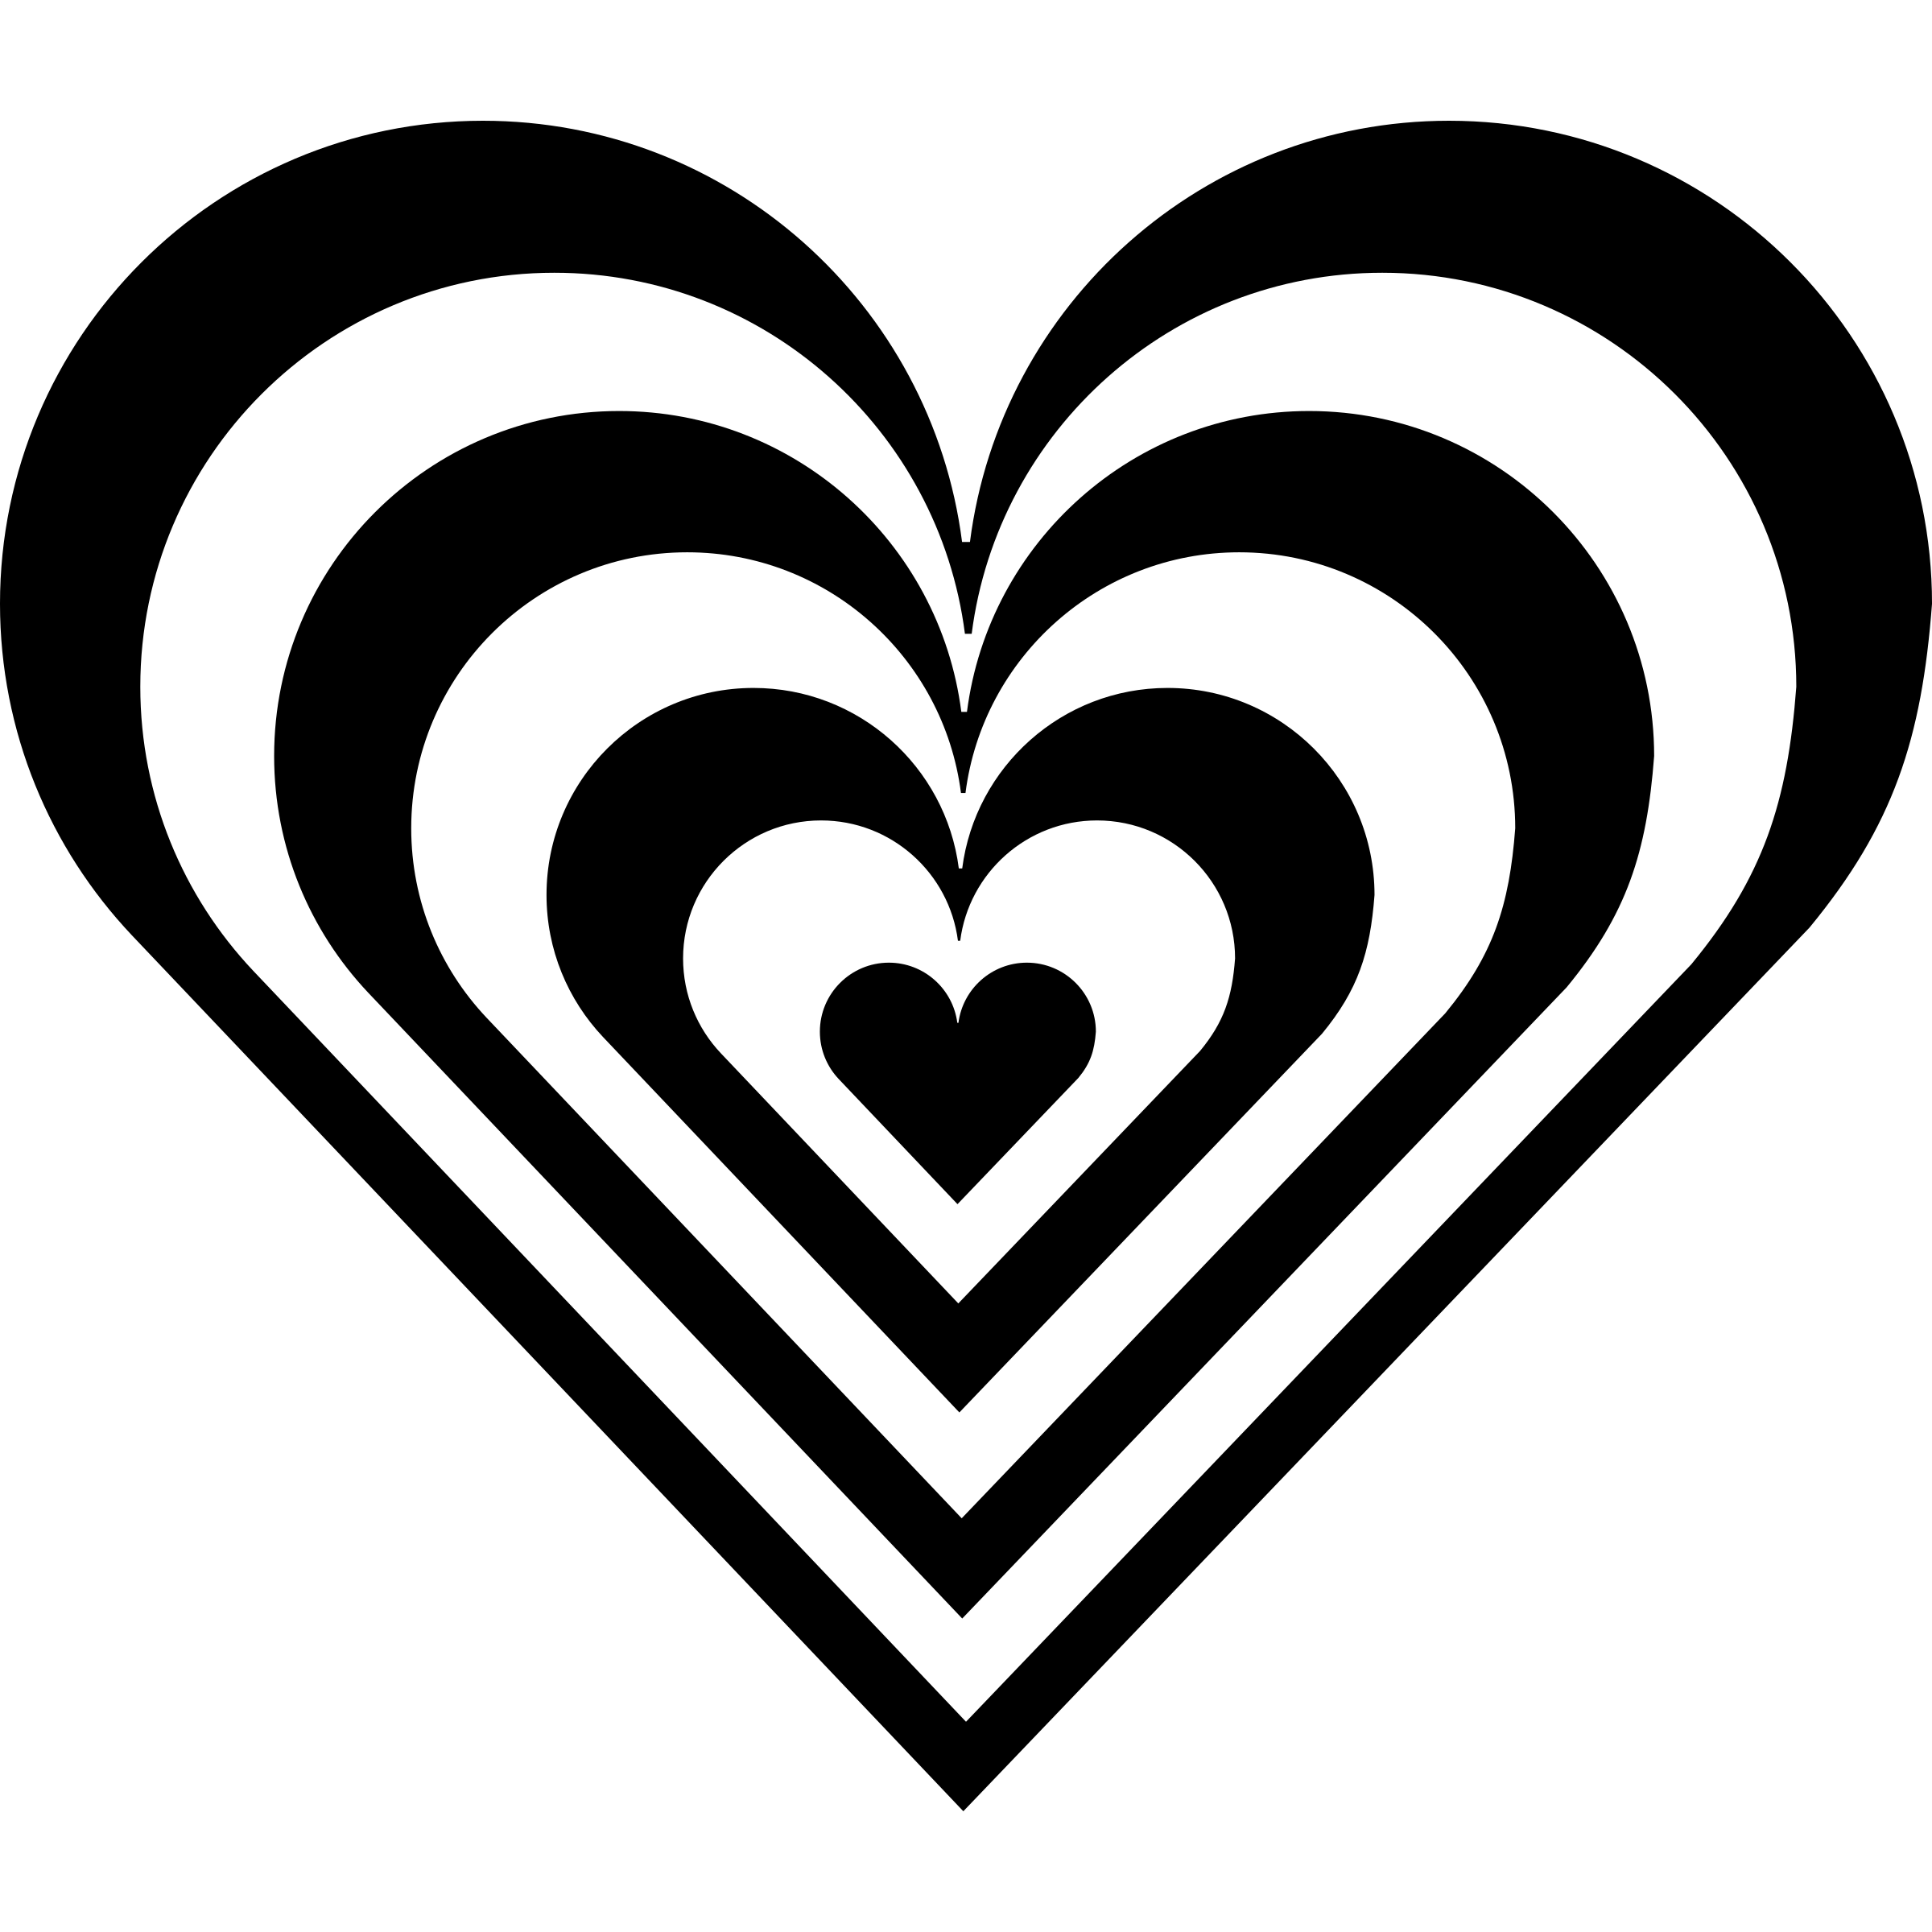 zebra heart by 10binary